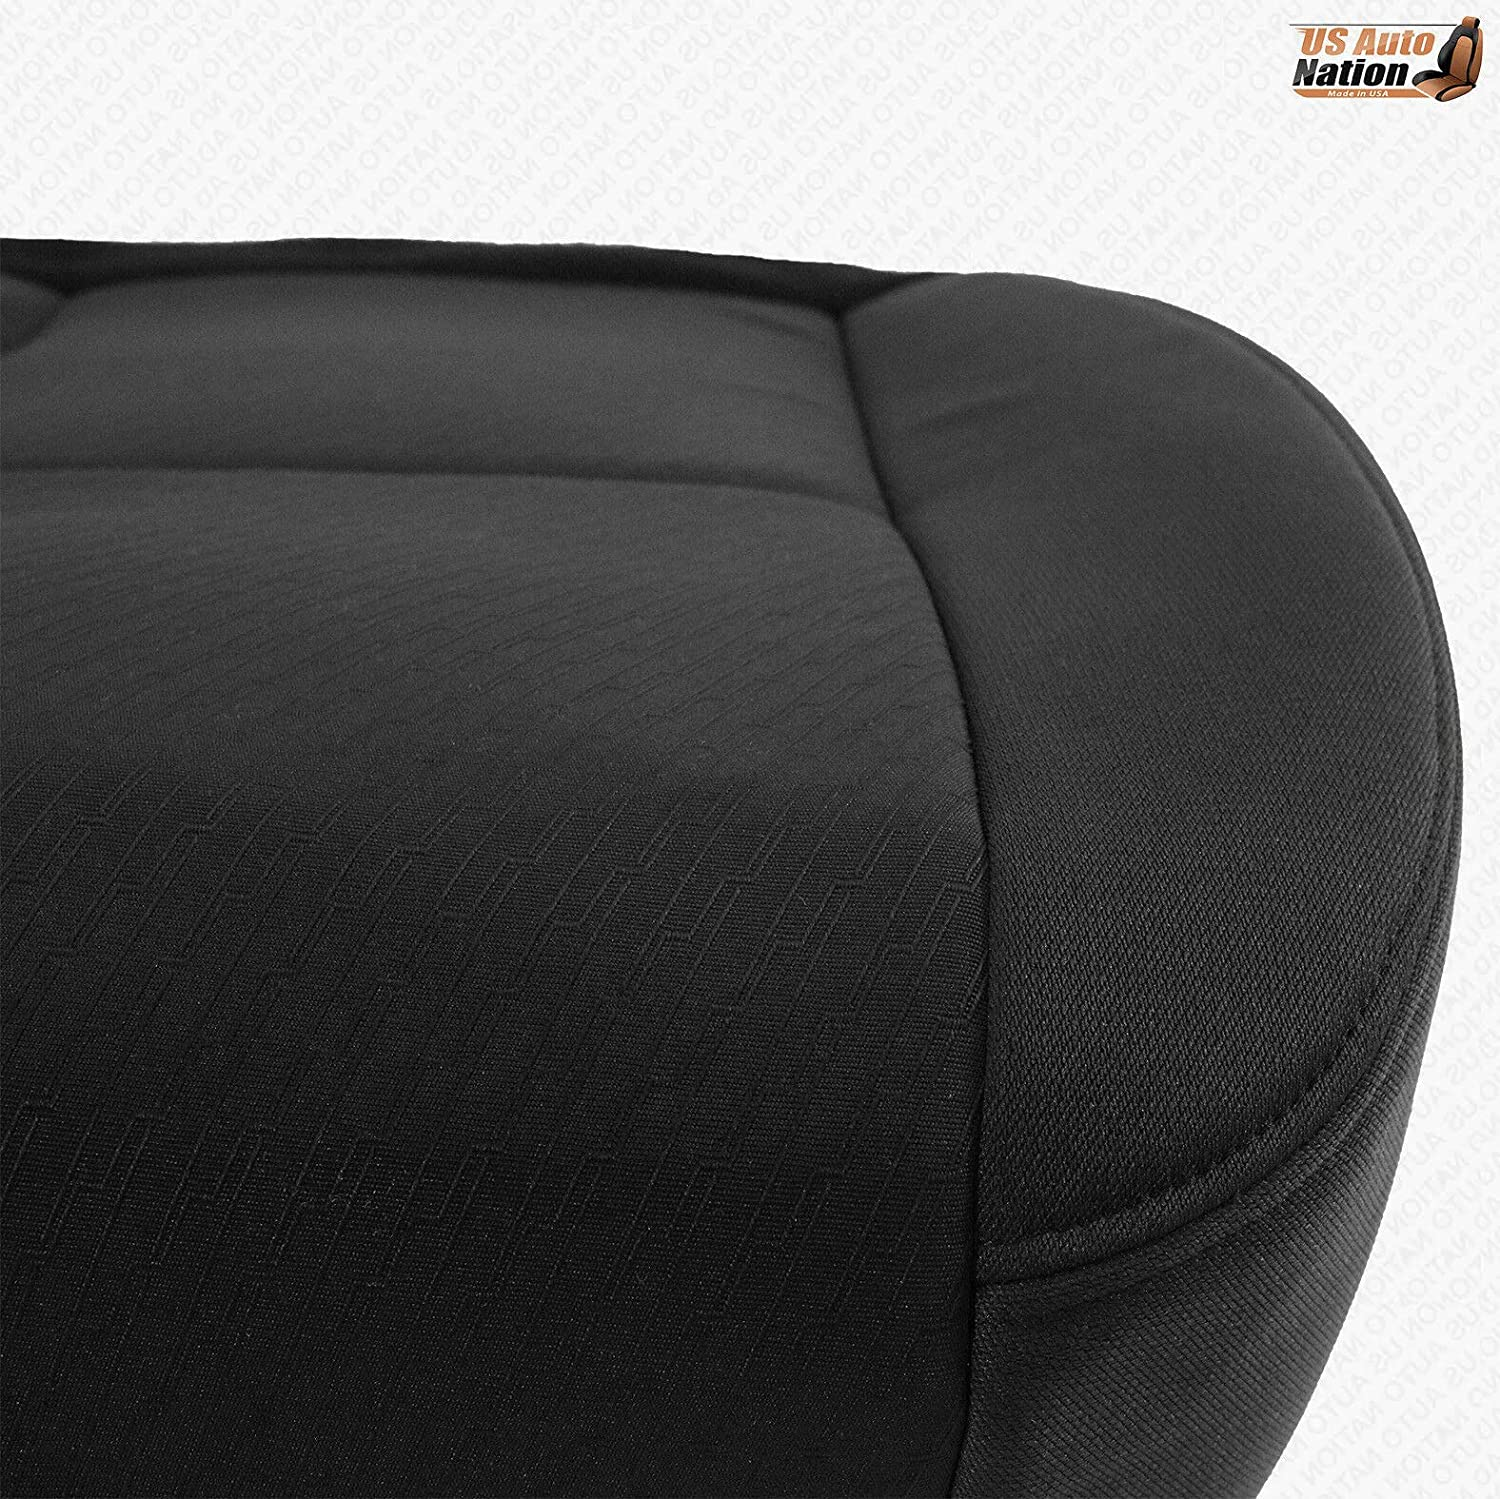 US Auto Nation GMC Sierra 1500 Passenger Bottom Replacement Cloth Seat Cover BLK